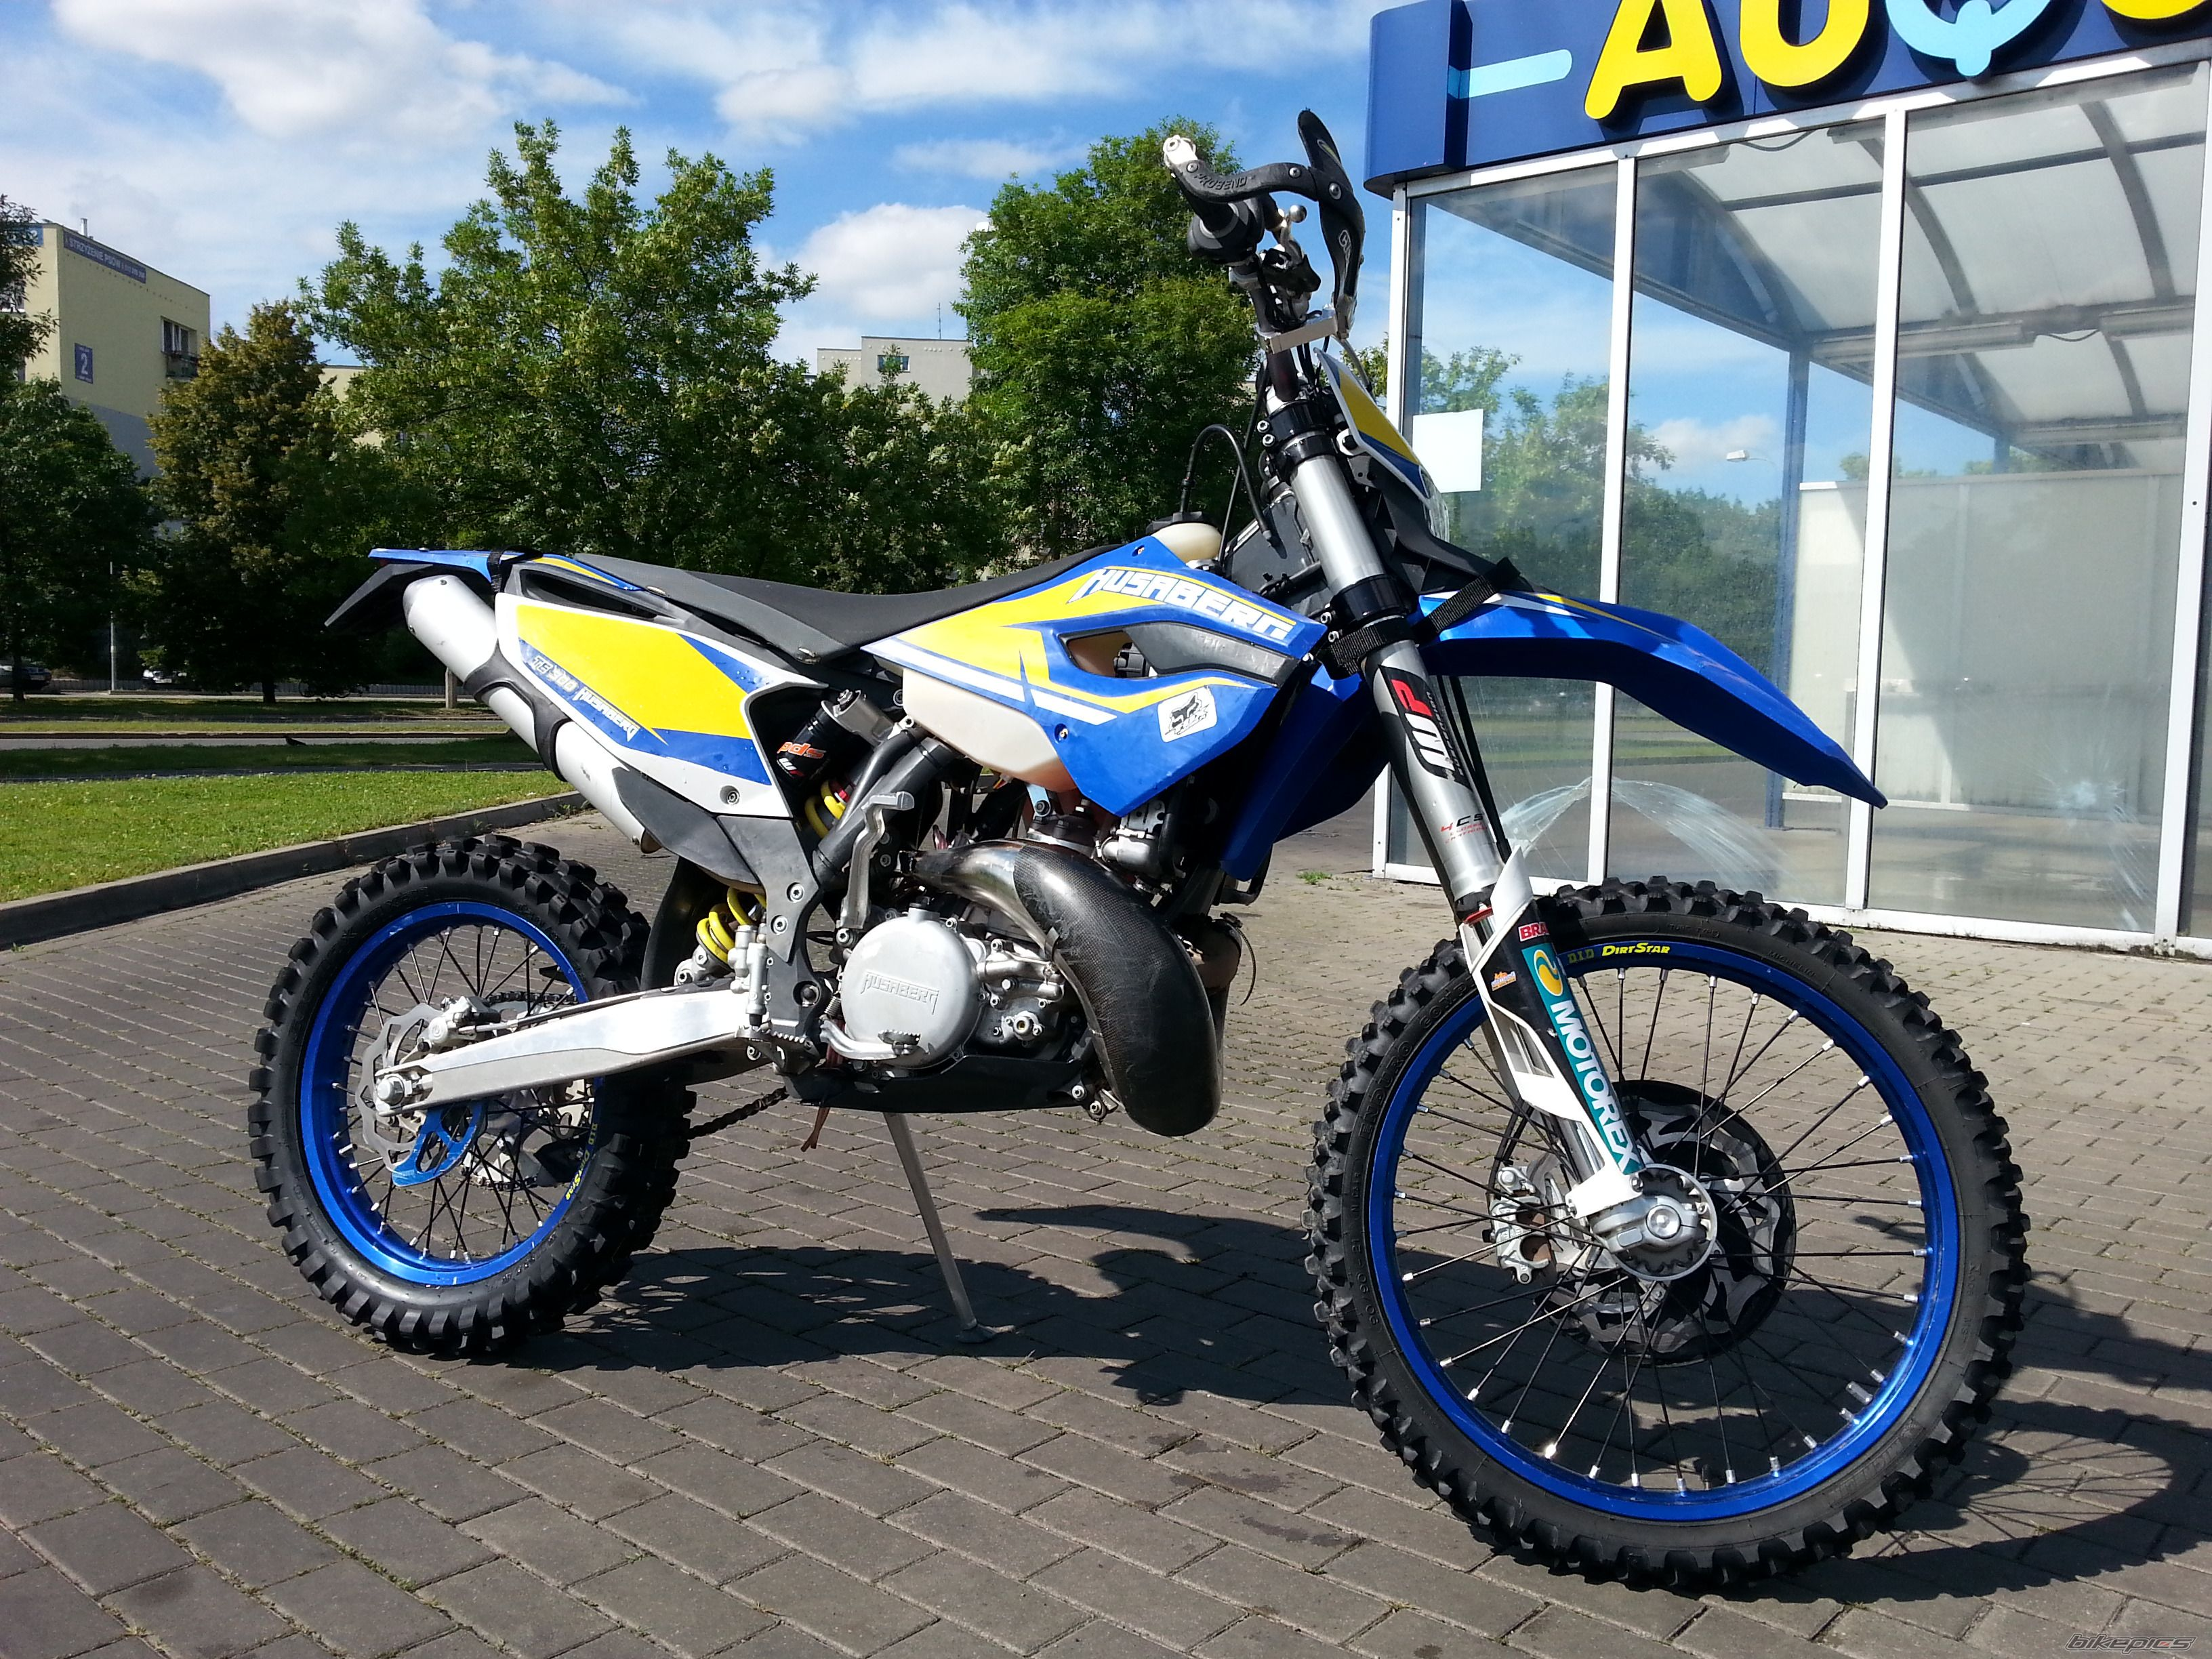 2013 HUSABERG TE300 | Picture 2682875 motorcycle photo